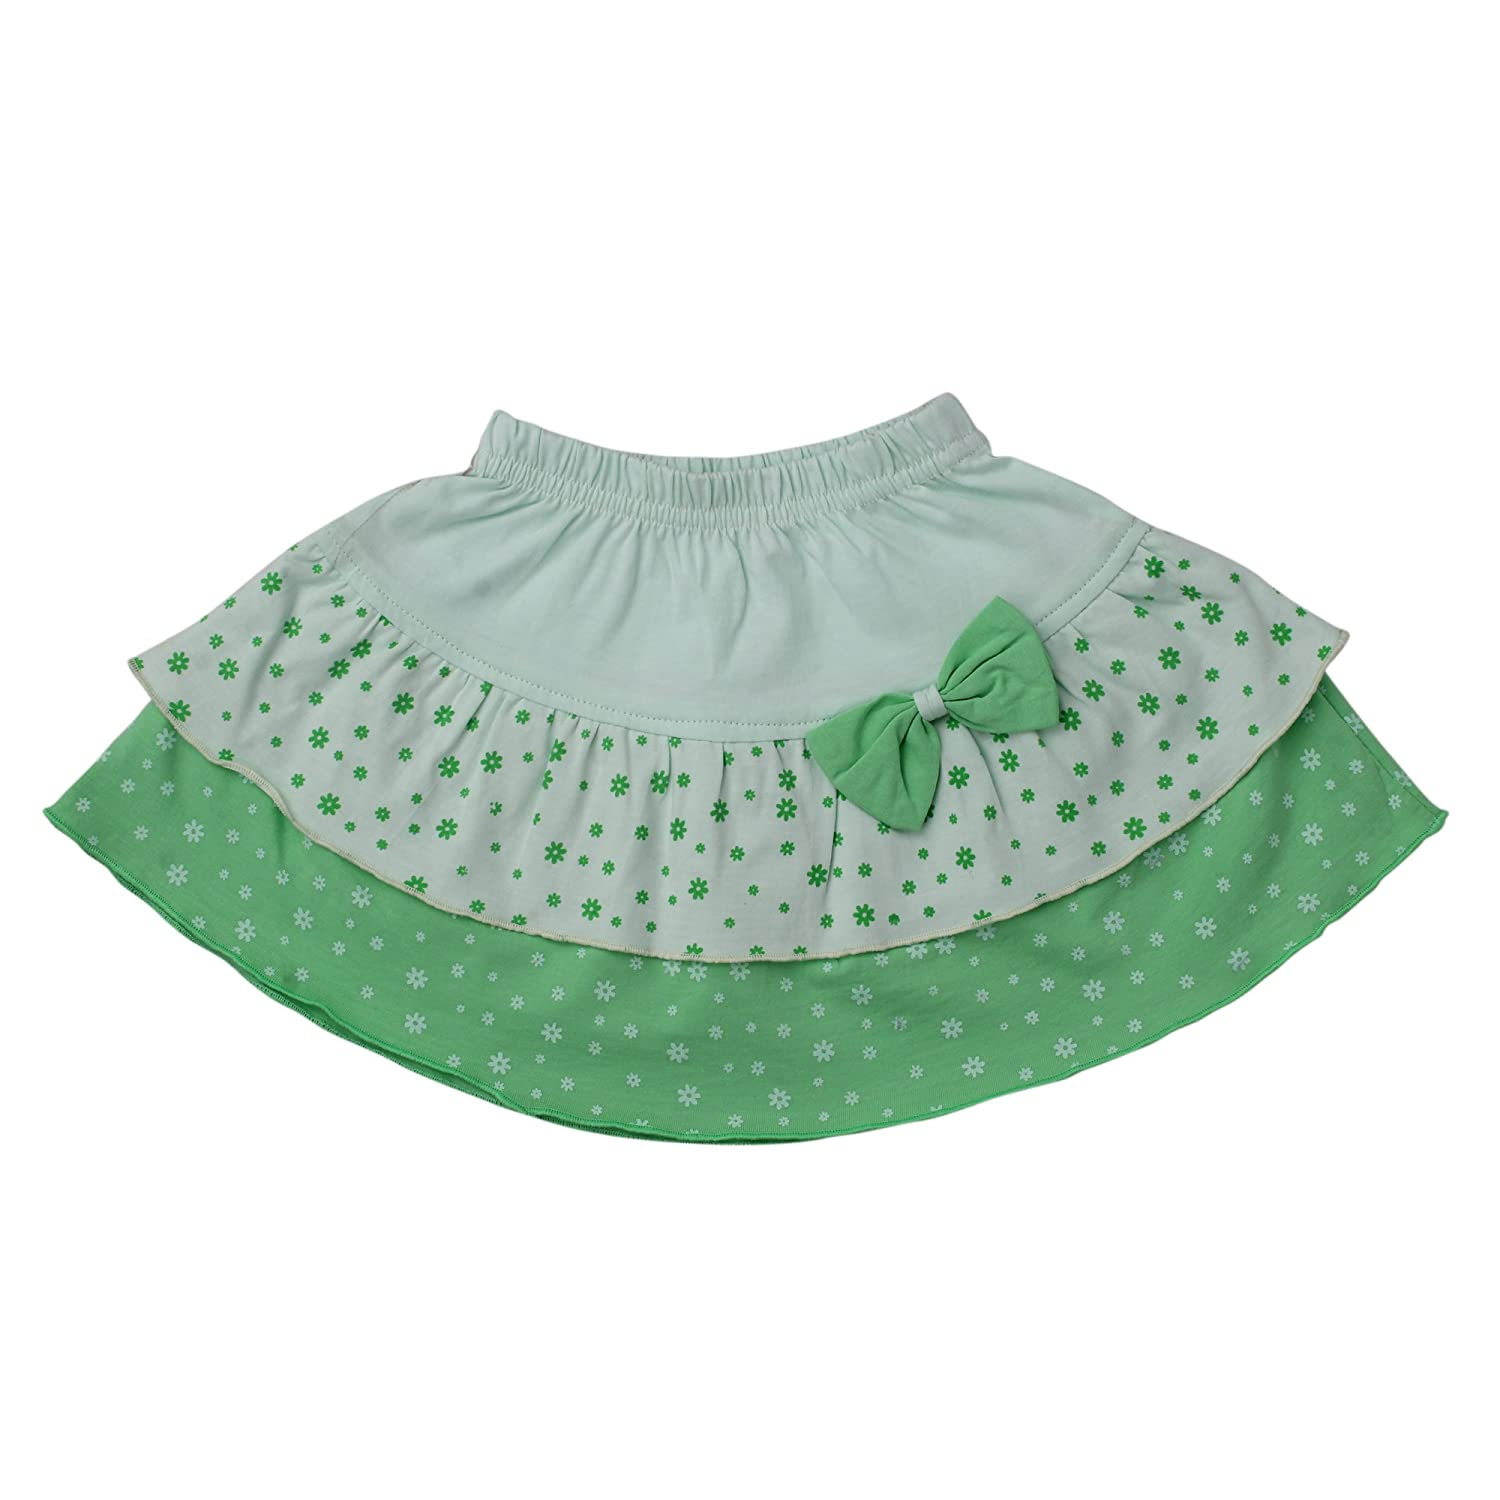 f119be0e6214 ICABLE High Quality Baby Girls Cute Cotton Top   Skirt Set – Super  Fashionable – Available in Cool Summer Colors